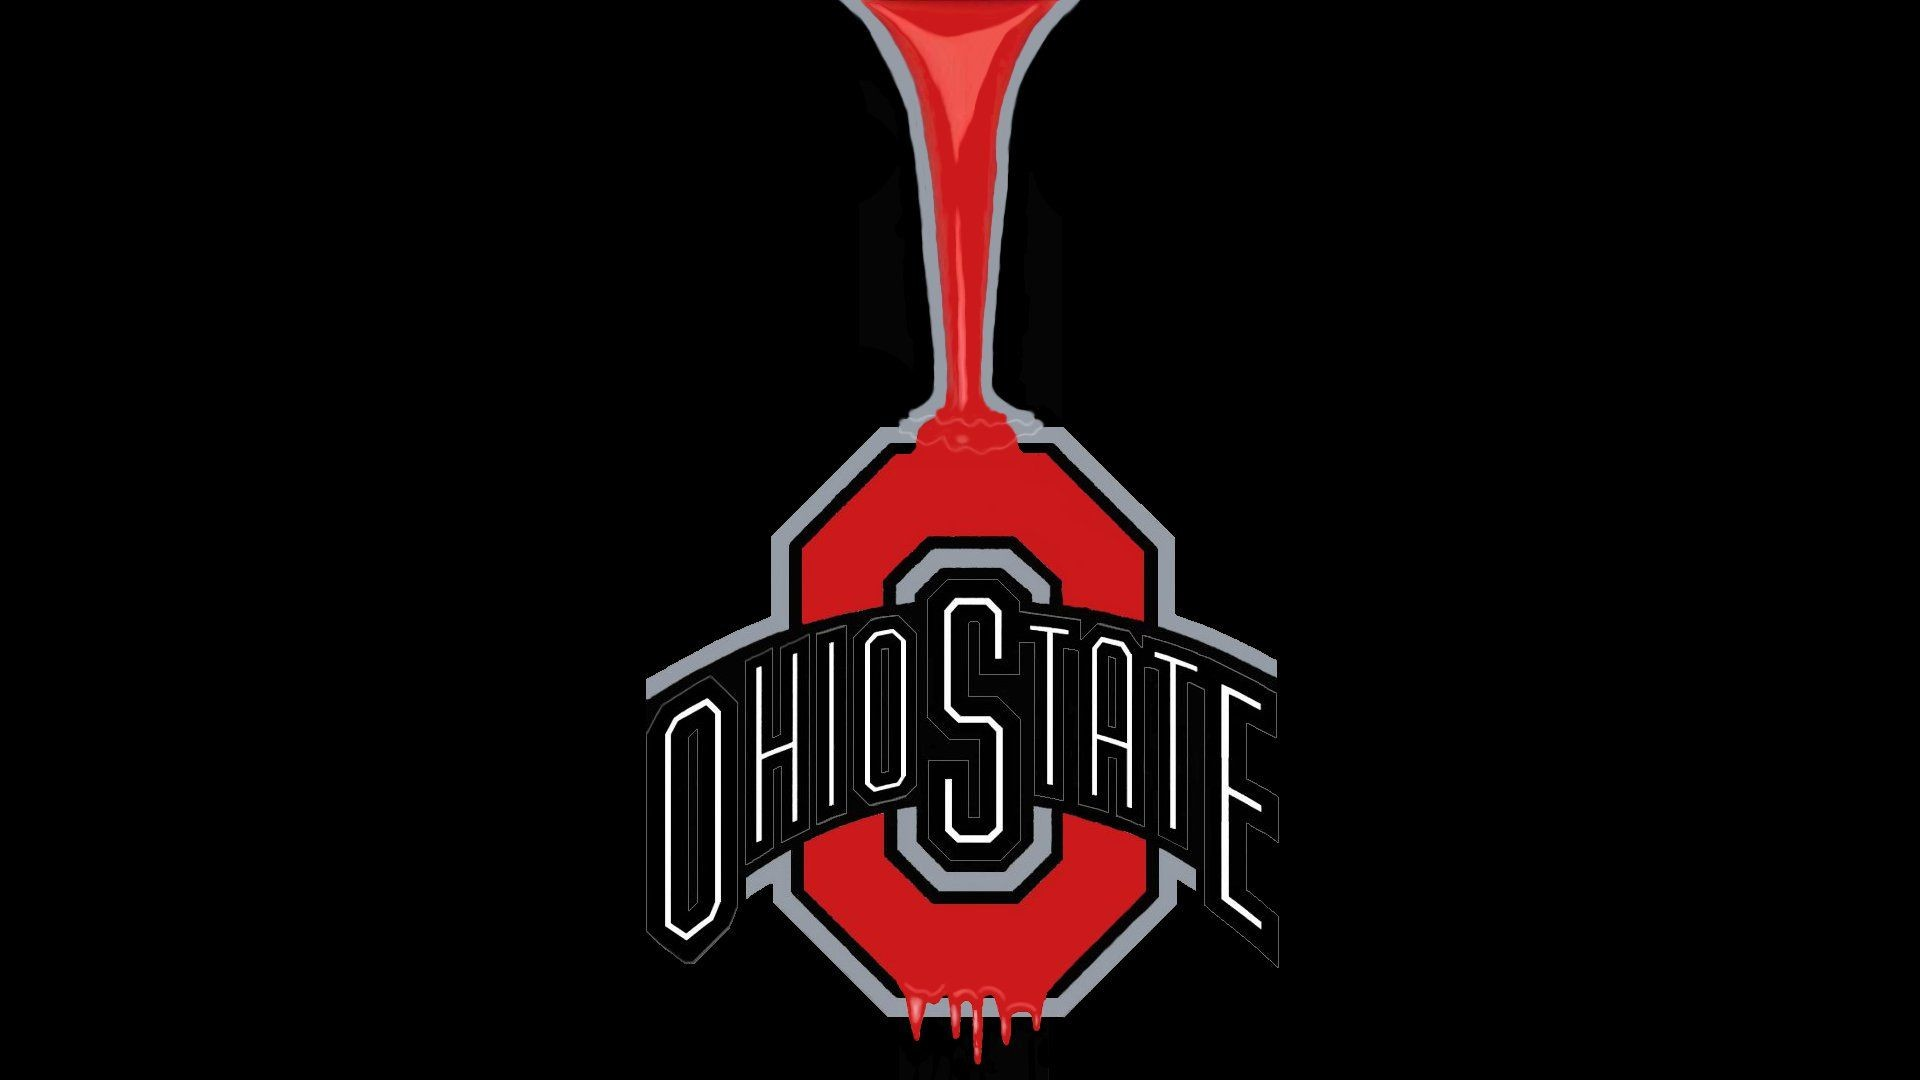 1920x1080 OSU-Wallpaper-ohio-state-football-HQ | wallpaper.wiki